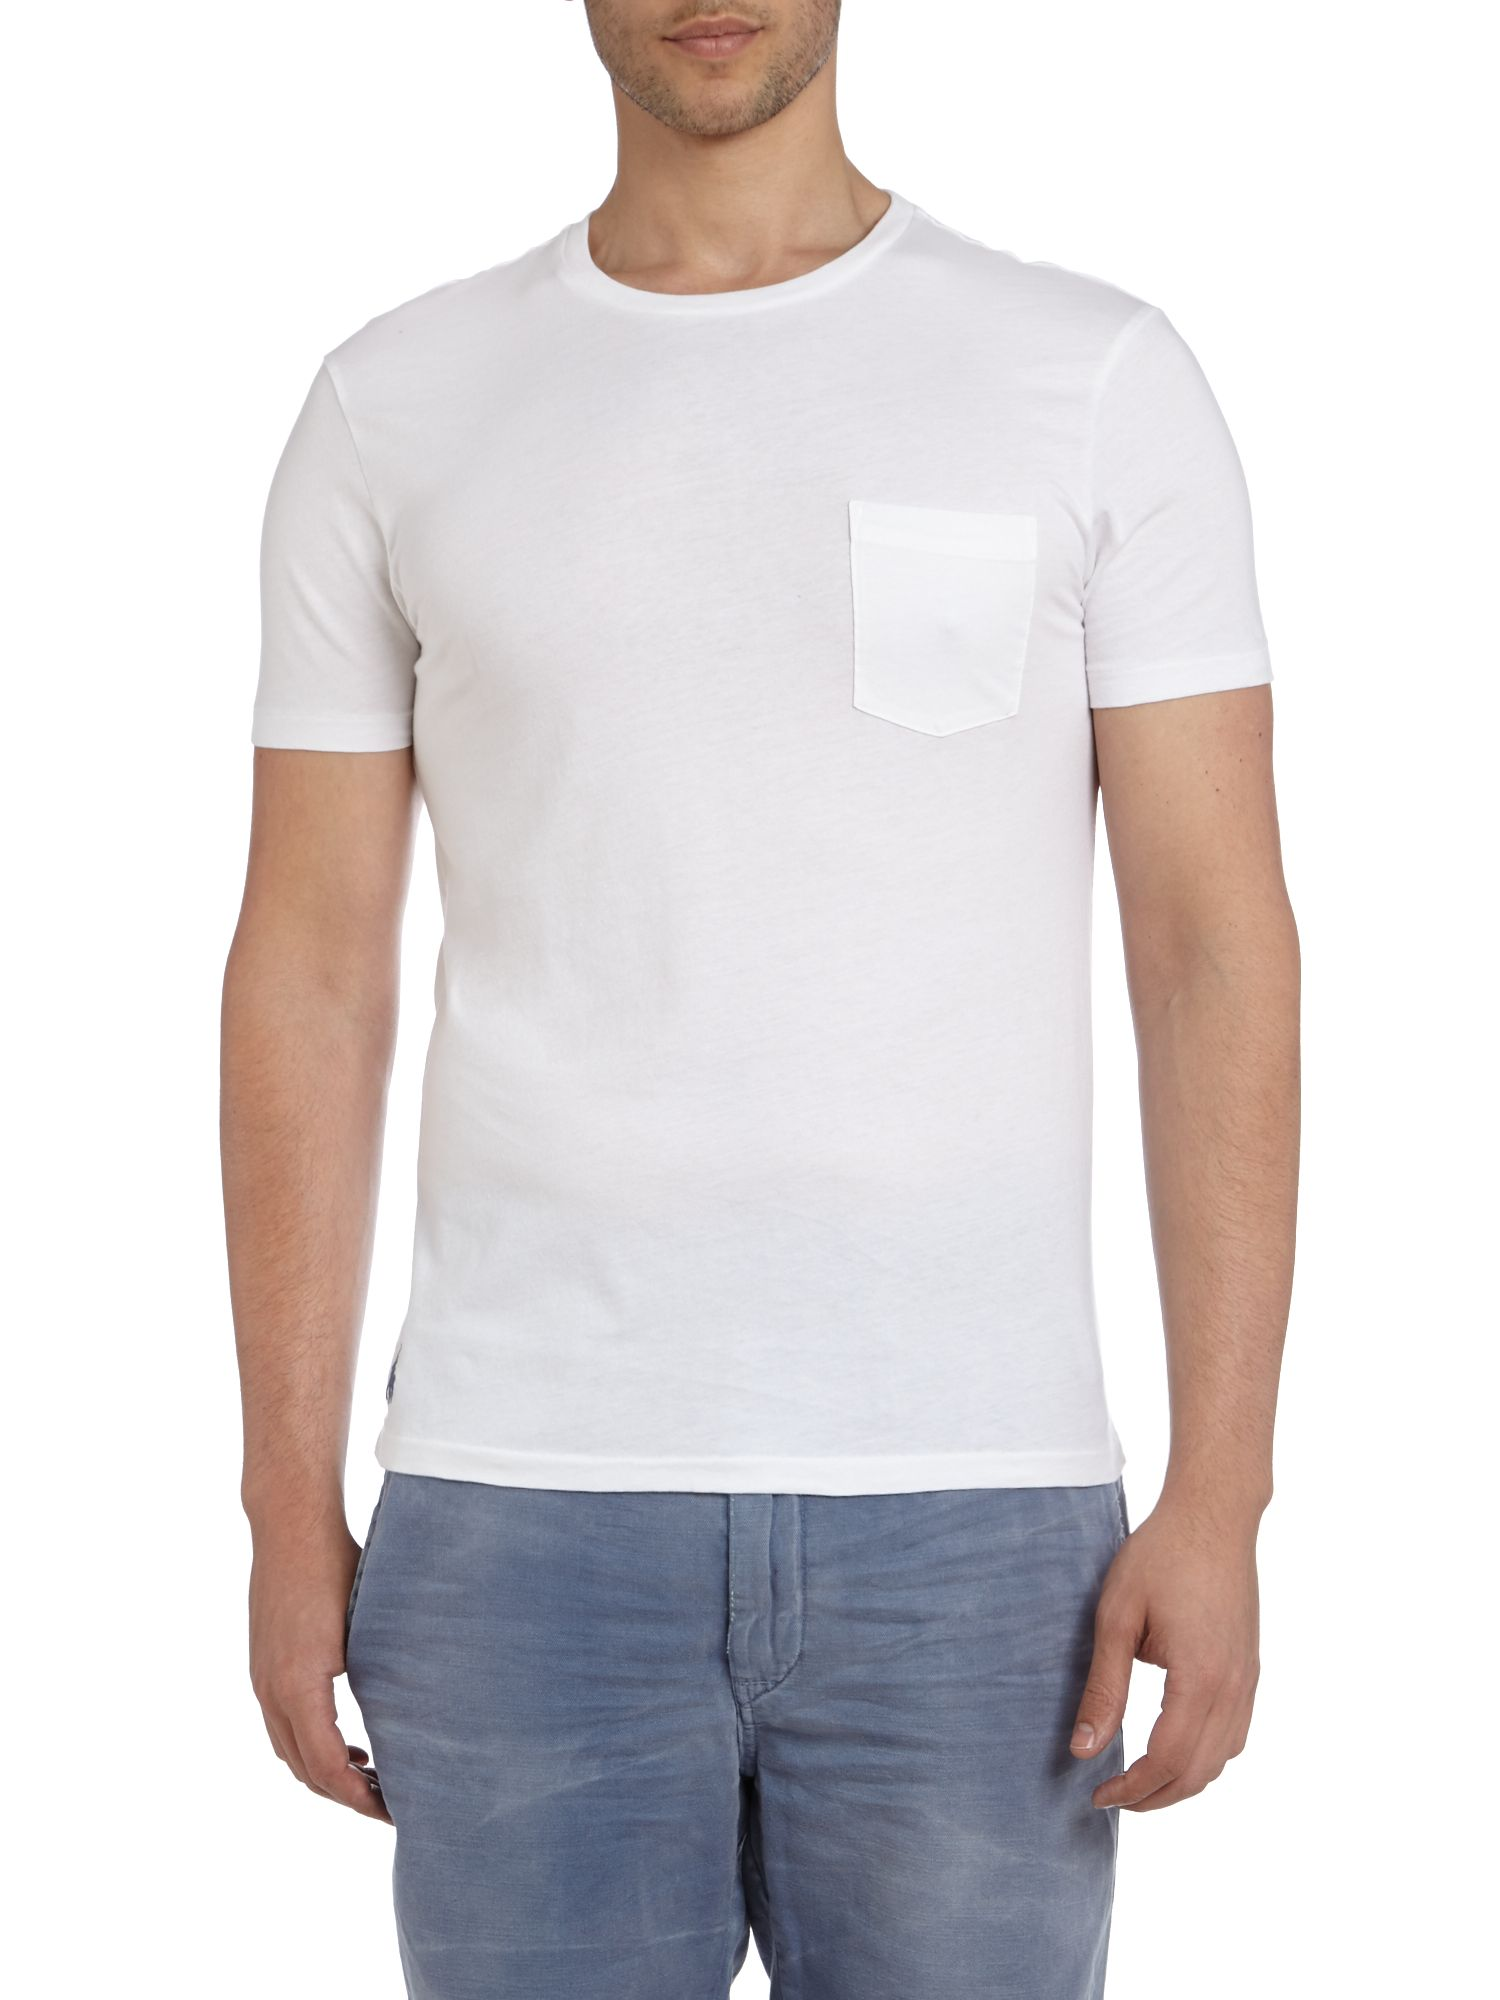 Crew neck pocket t shirt